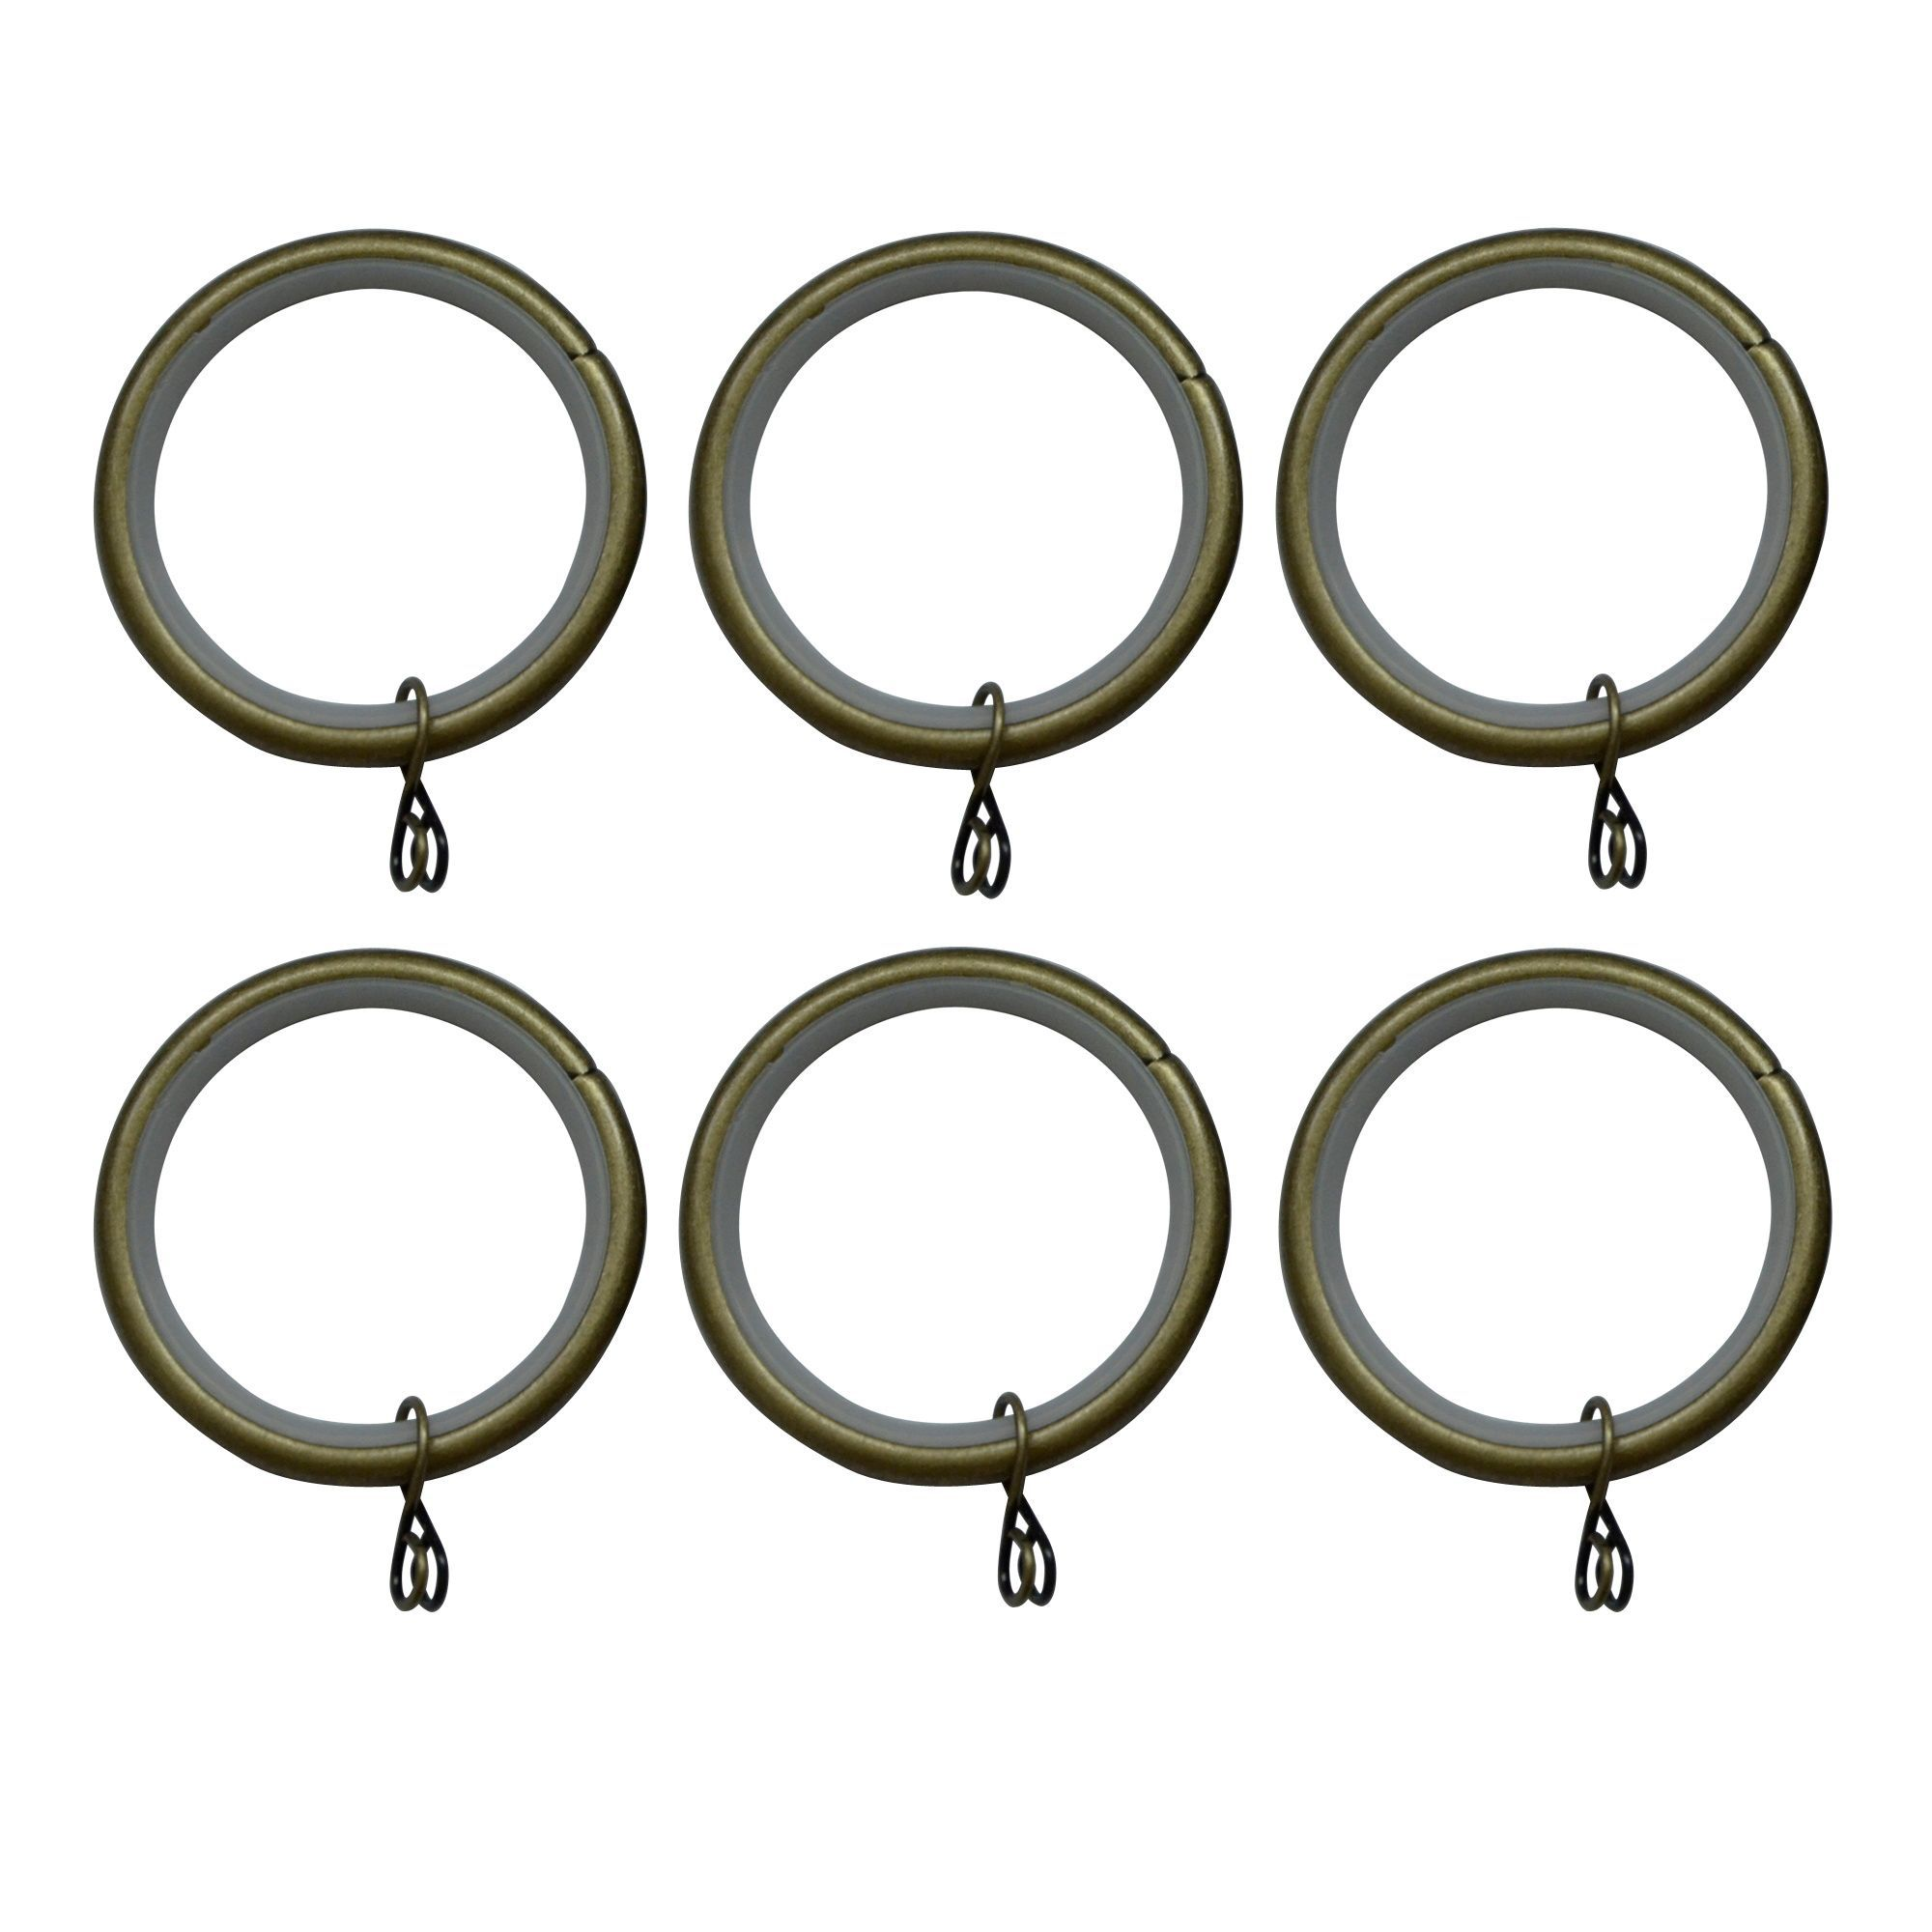 Antique Brass Effect Metal Round Curtain Ring Dia 35mm Pack Of 6 Departments Diy At B Q